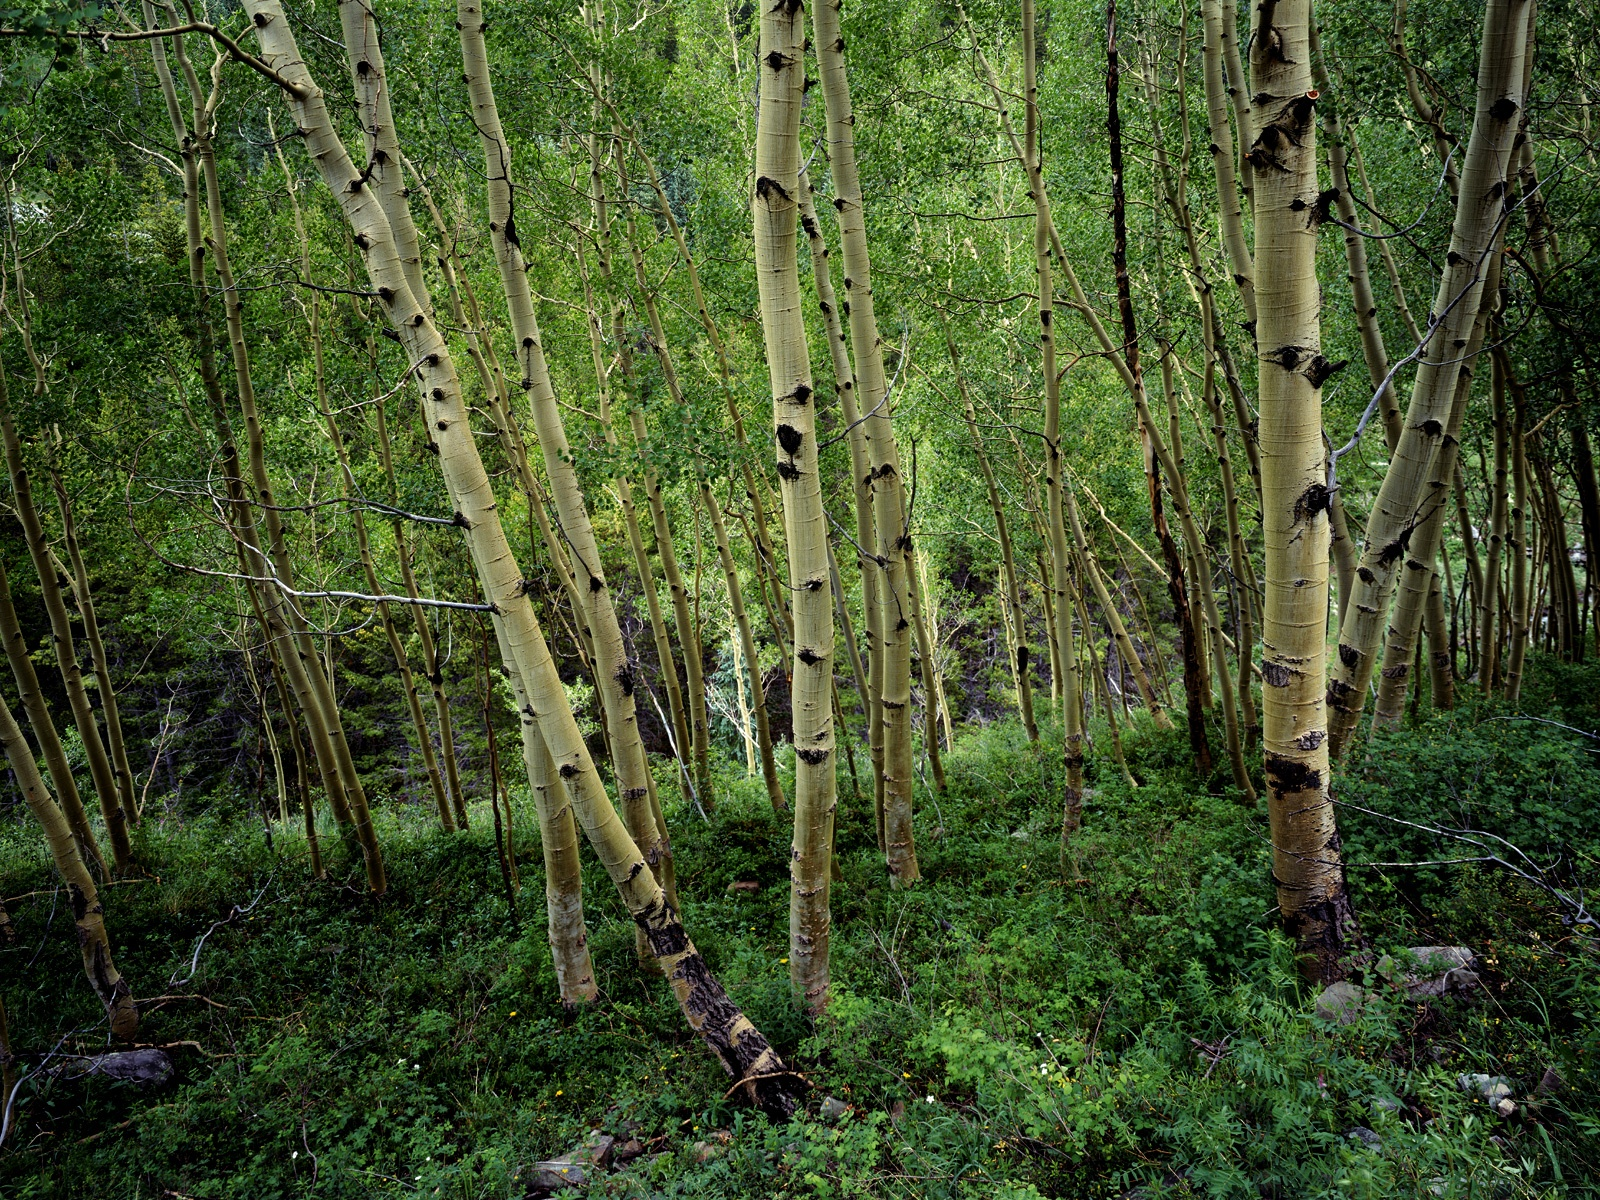 Birch forest wallpapers Birch forest stock photos 1600x1200